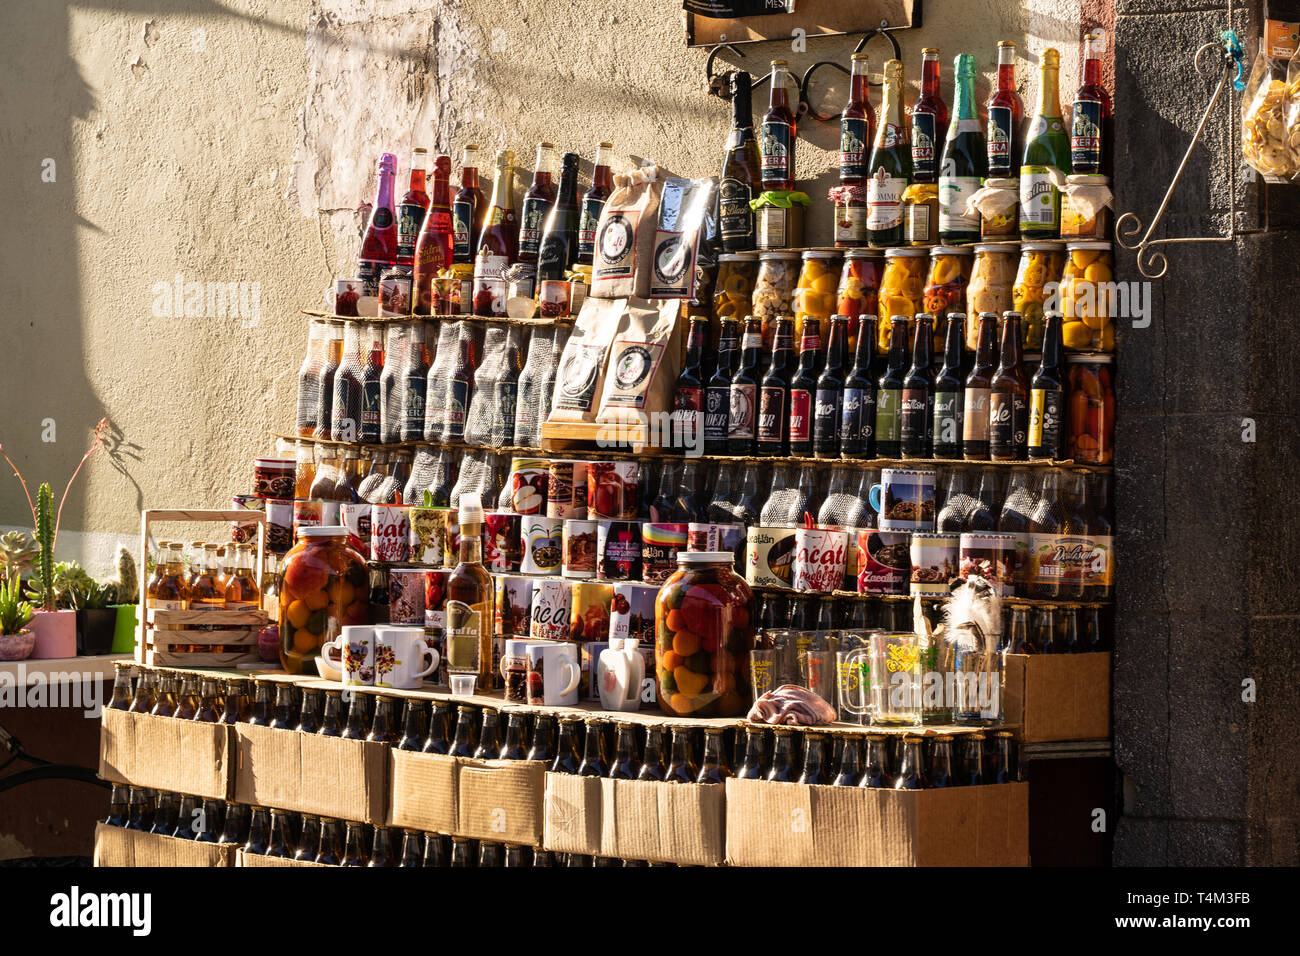 Mexican products from Puebla Stock Photo: 243845599 - Alamy